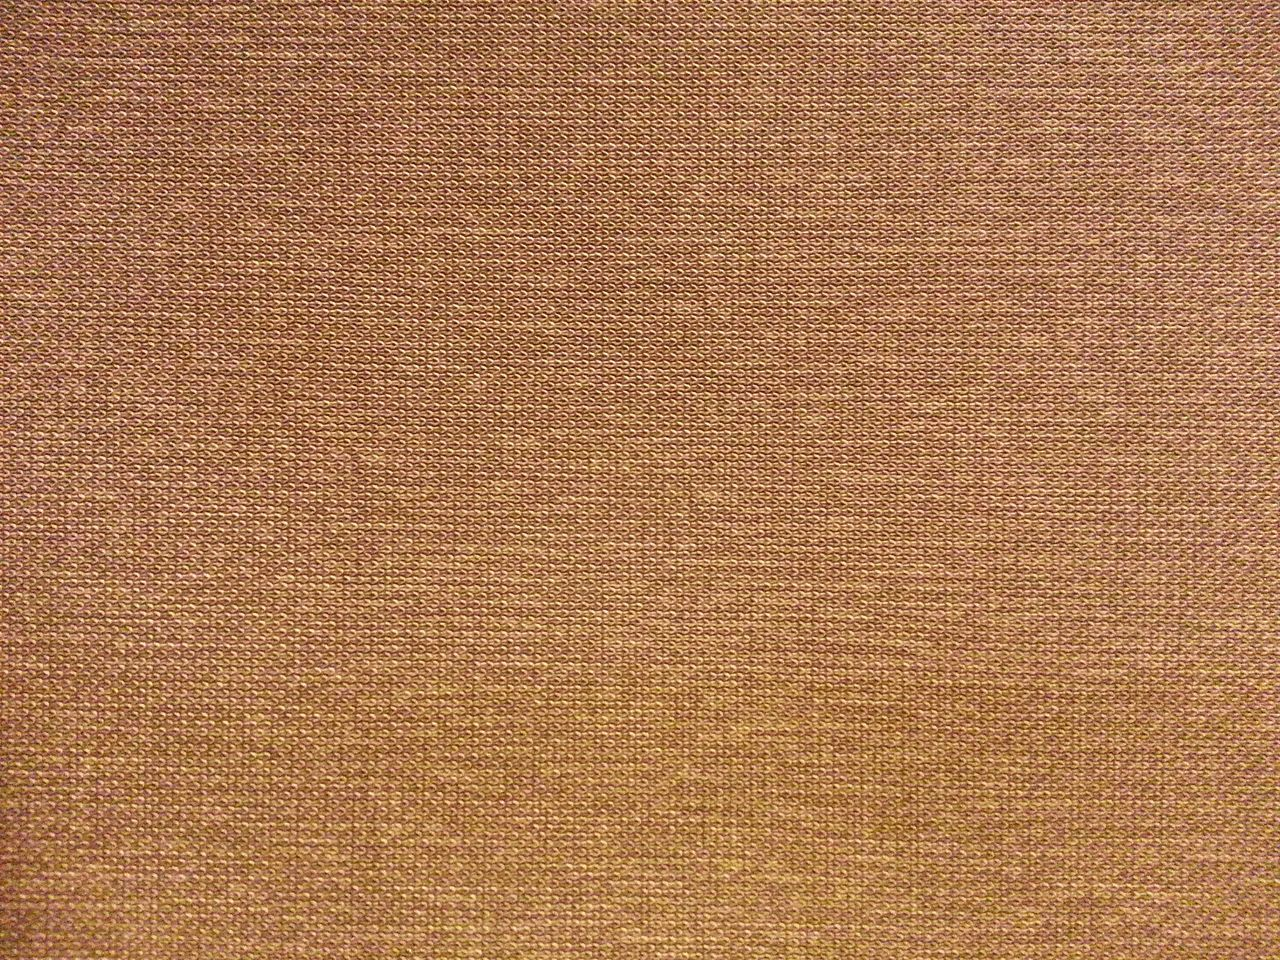 textured, backgrounds, material, textile, pattern, rough, brown, striped, textured effect, full frame, abstract, textile industry, copy space, blank, brown background, colored background, close-up, no people, fiber, nature, painted image